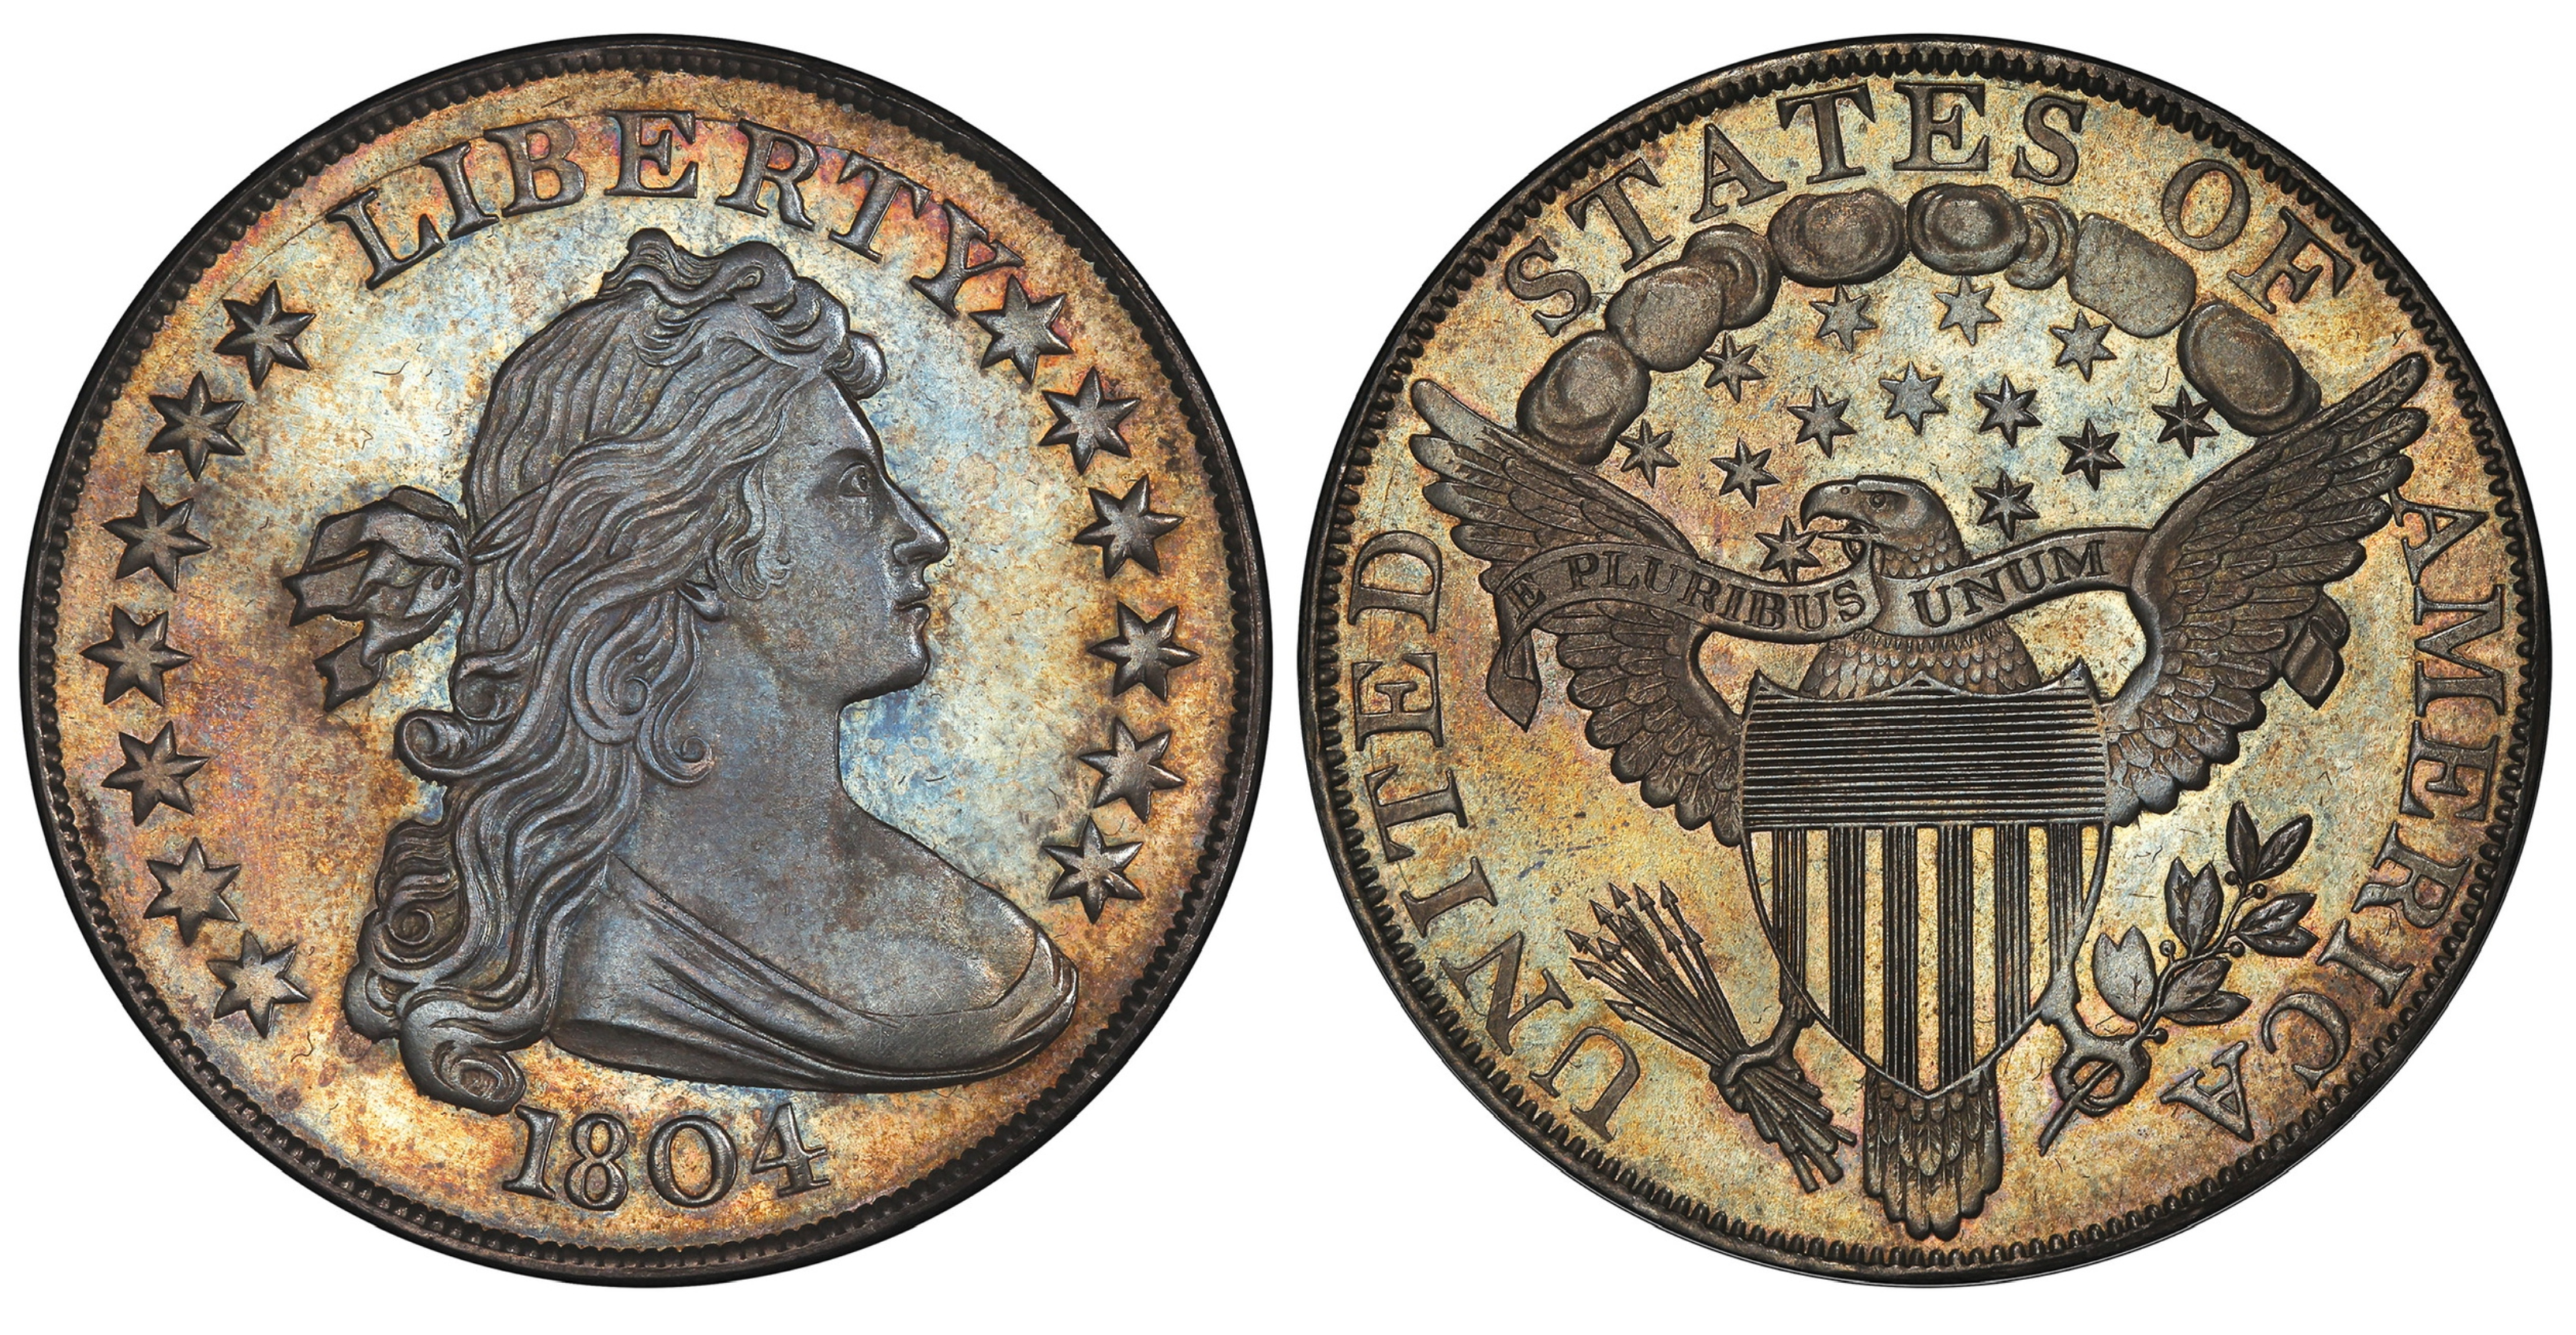 thumbnail image for The Finest 1804 Silver Dollar Sells for $7.68 Million at Stack's Bowers Galleries